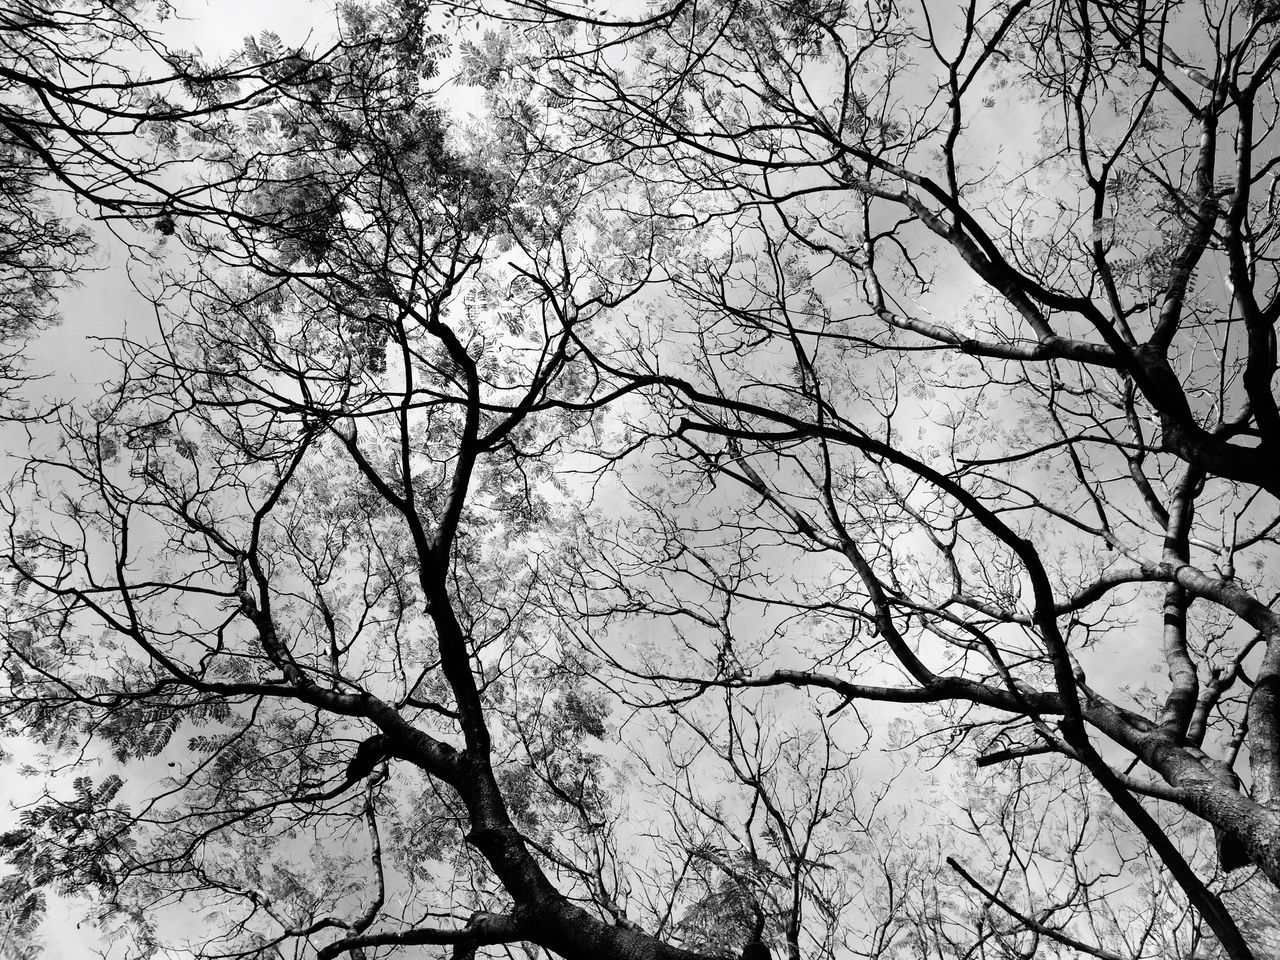 Lookingup Looking Up Trees Tree Twigs Twigs And Branches Low Angle View Sky Blackandwhite Black And White Black & White EyeEm Best Shots - Black + White EyeEm Best Shots EyeEm Nature Lover Eye4photography  EyeEm Gallery Nature Nature_collection Nature Photography Nature On Your Doorstep Nostalgia Nostalgic  Mexico City Ciudad De México Beauty In Nature